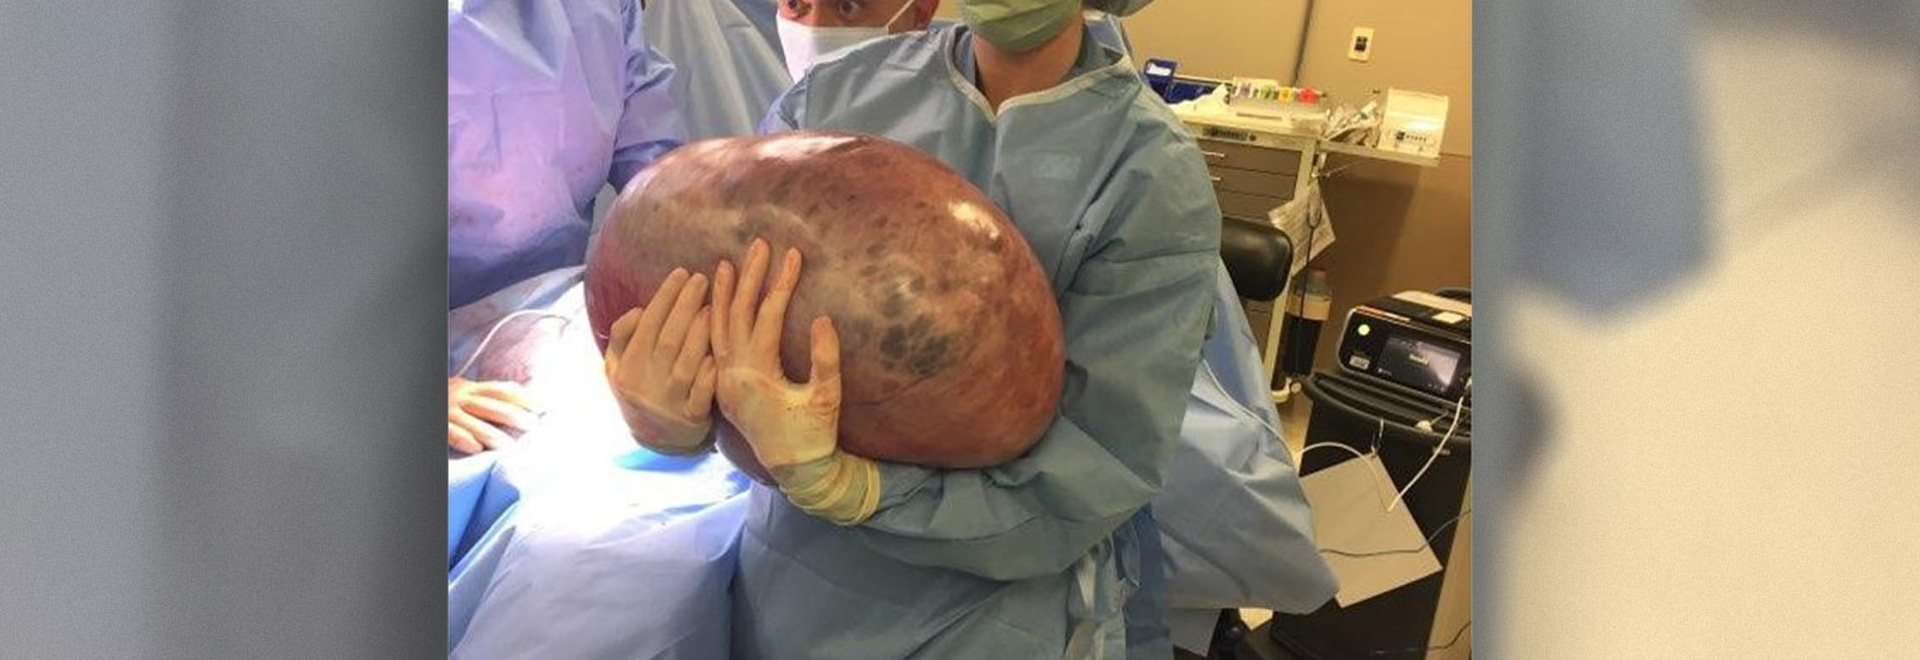 Doctors removed a 50-pound ovarian tumor from a woman in Alabama.